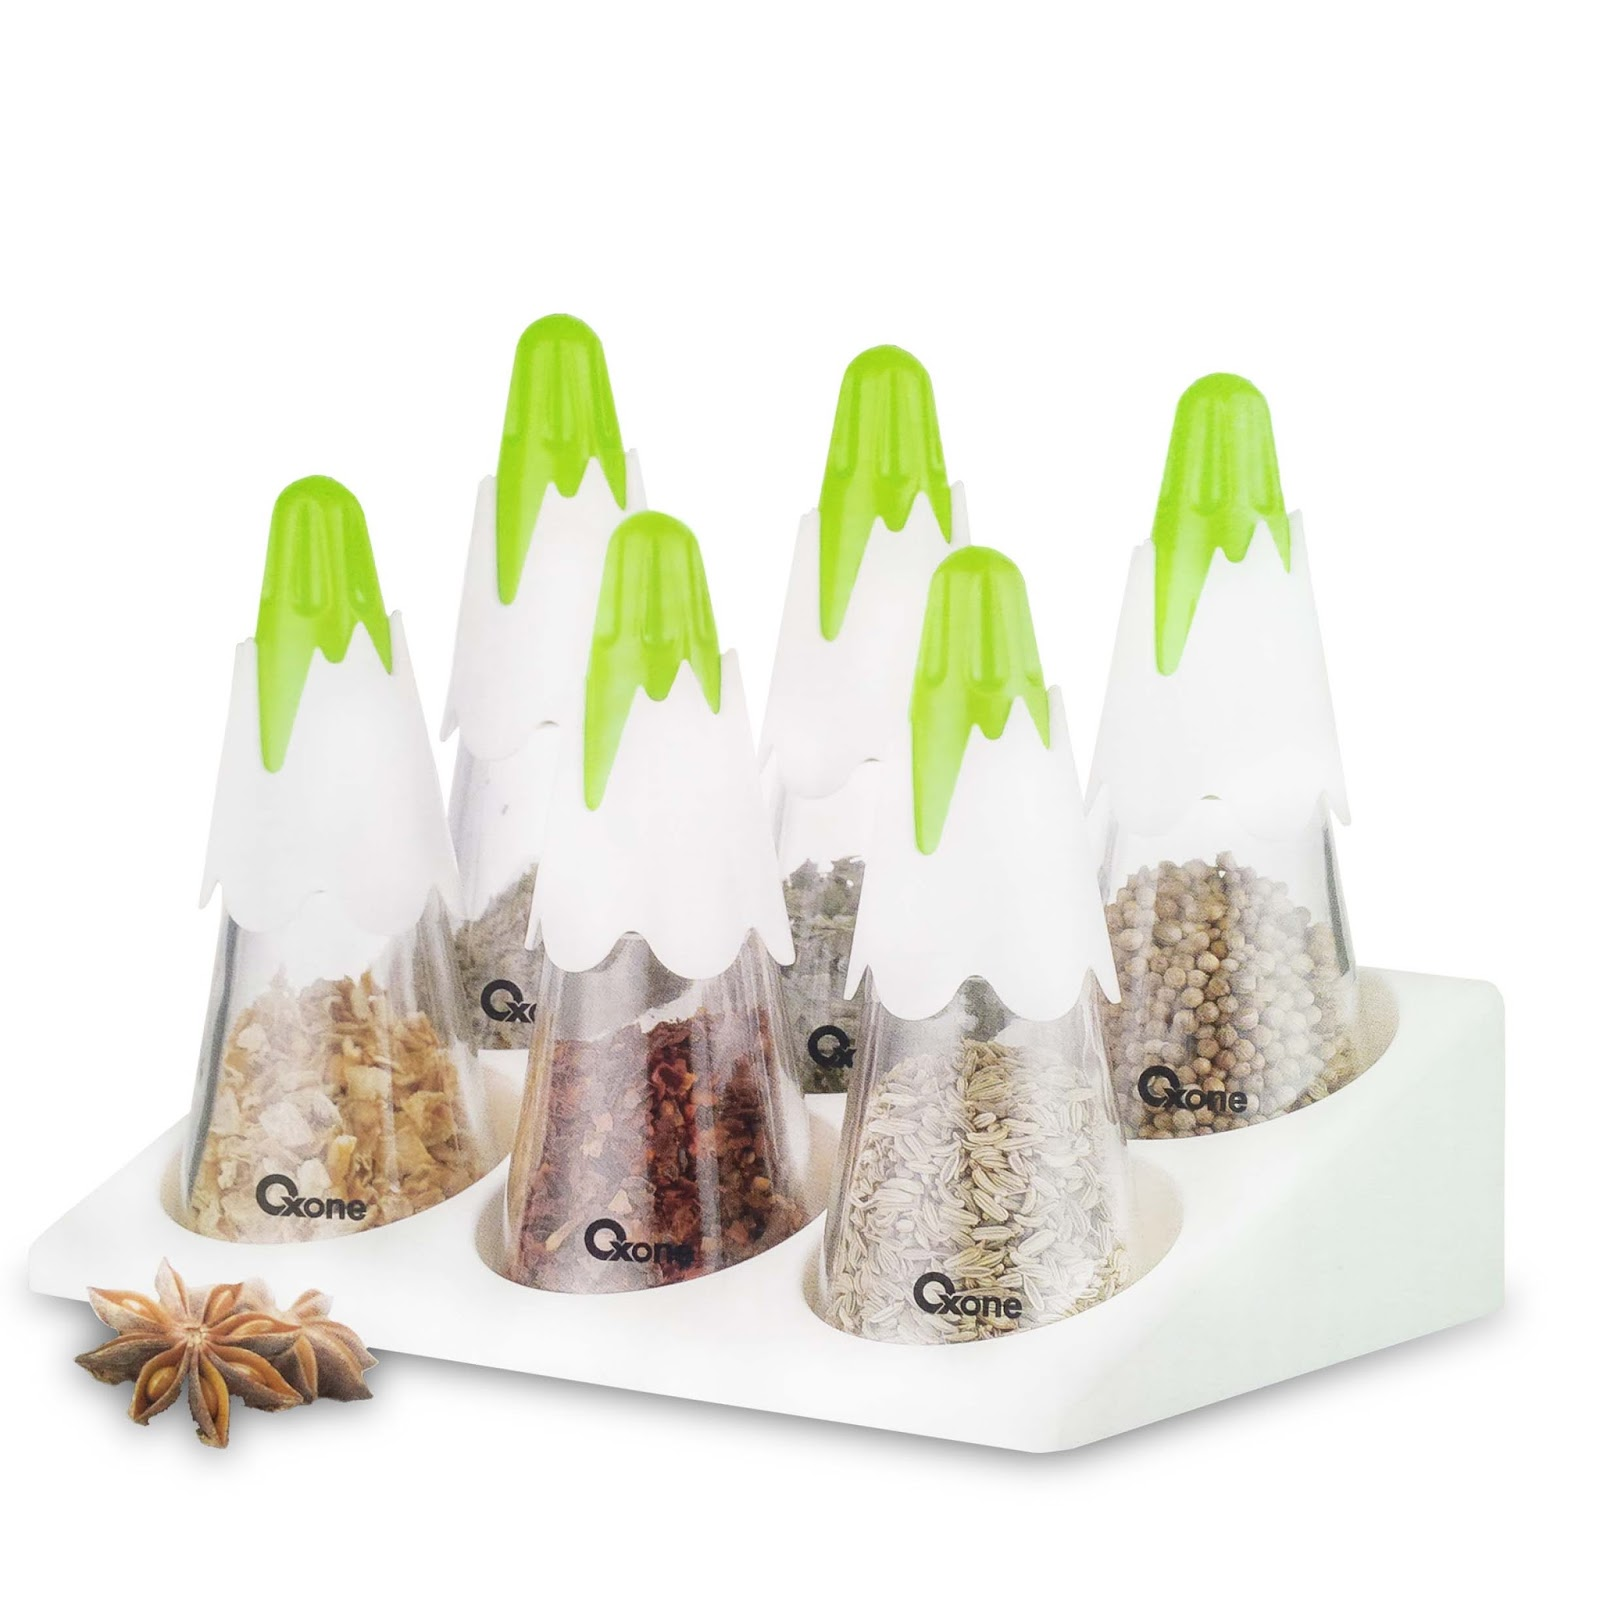 OX-341 Snowy Spice Set Oxone with Rack